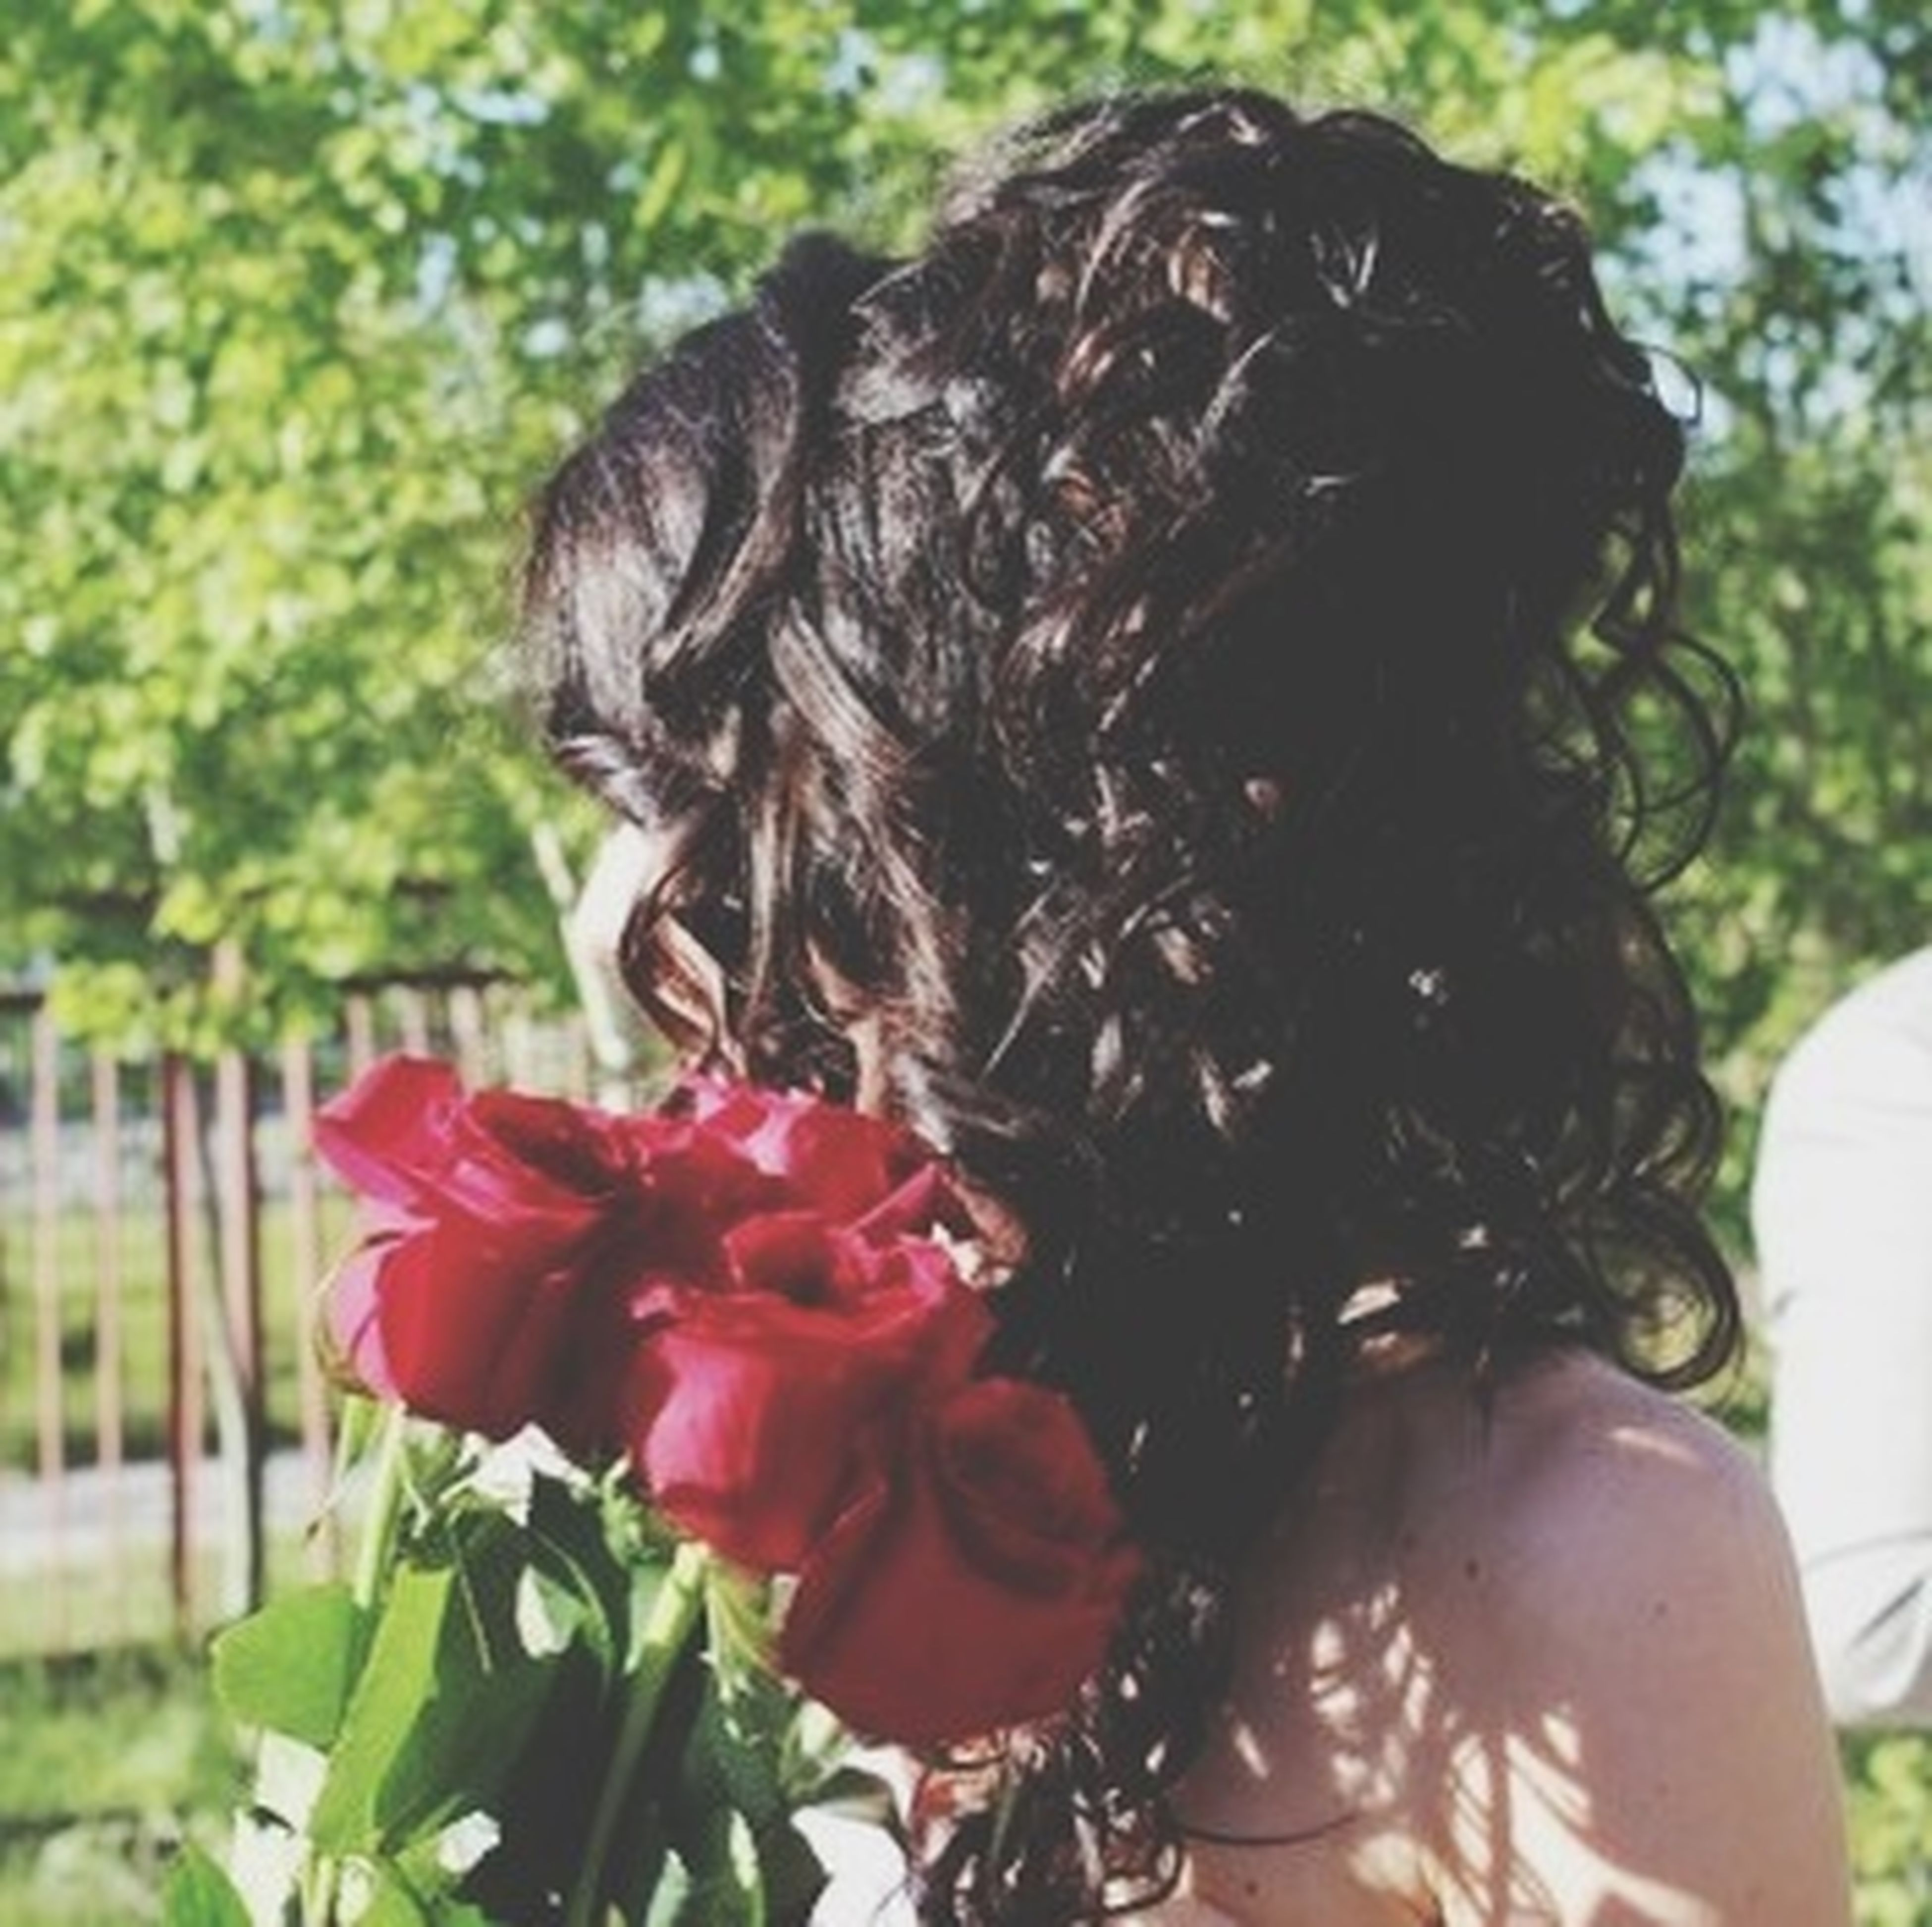 focus on foreground, flower, close-up, lifestyles, park - man made space, headshot, day, outdoors, person, leisure activity, nature, growth, plant, red, young women, holding, petal, tree